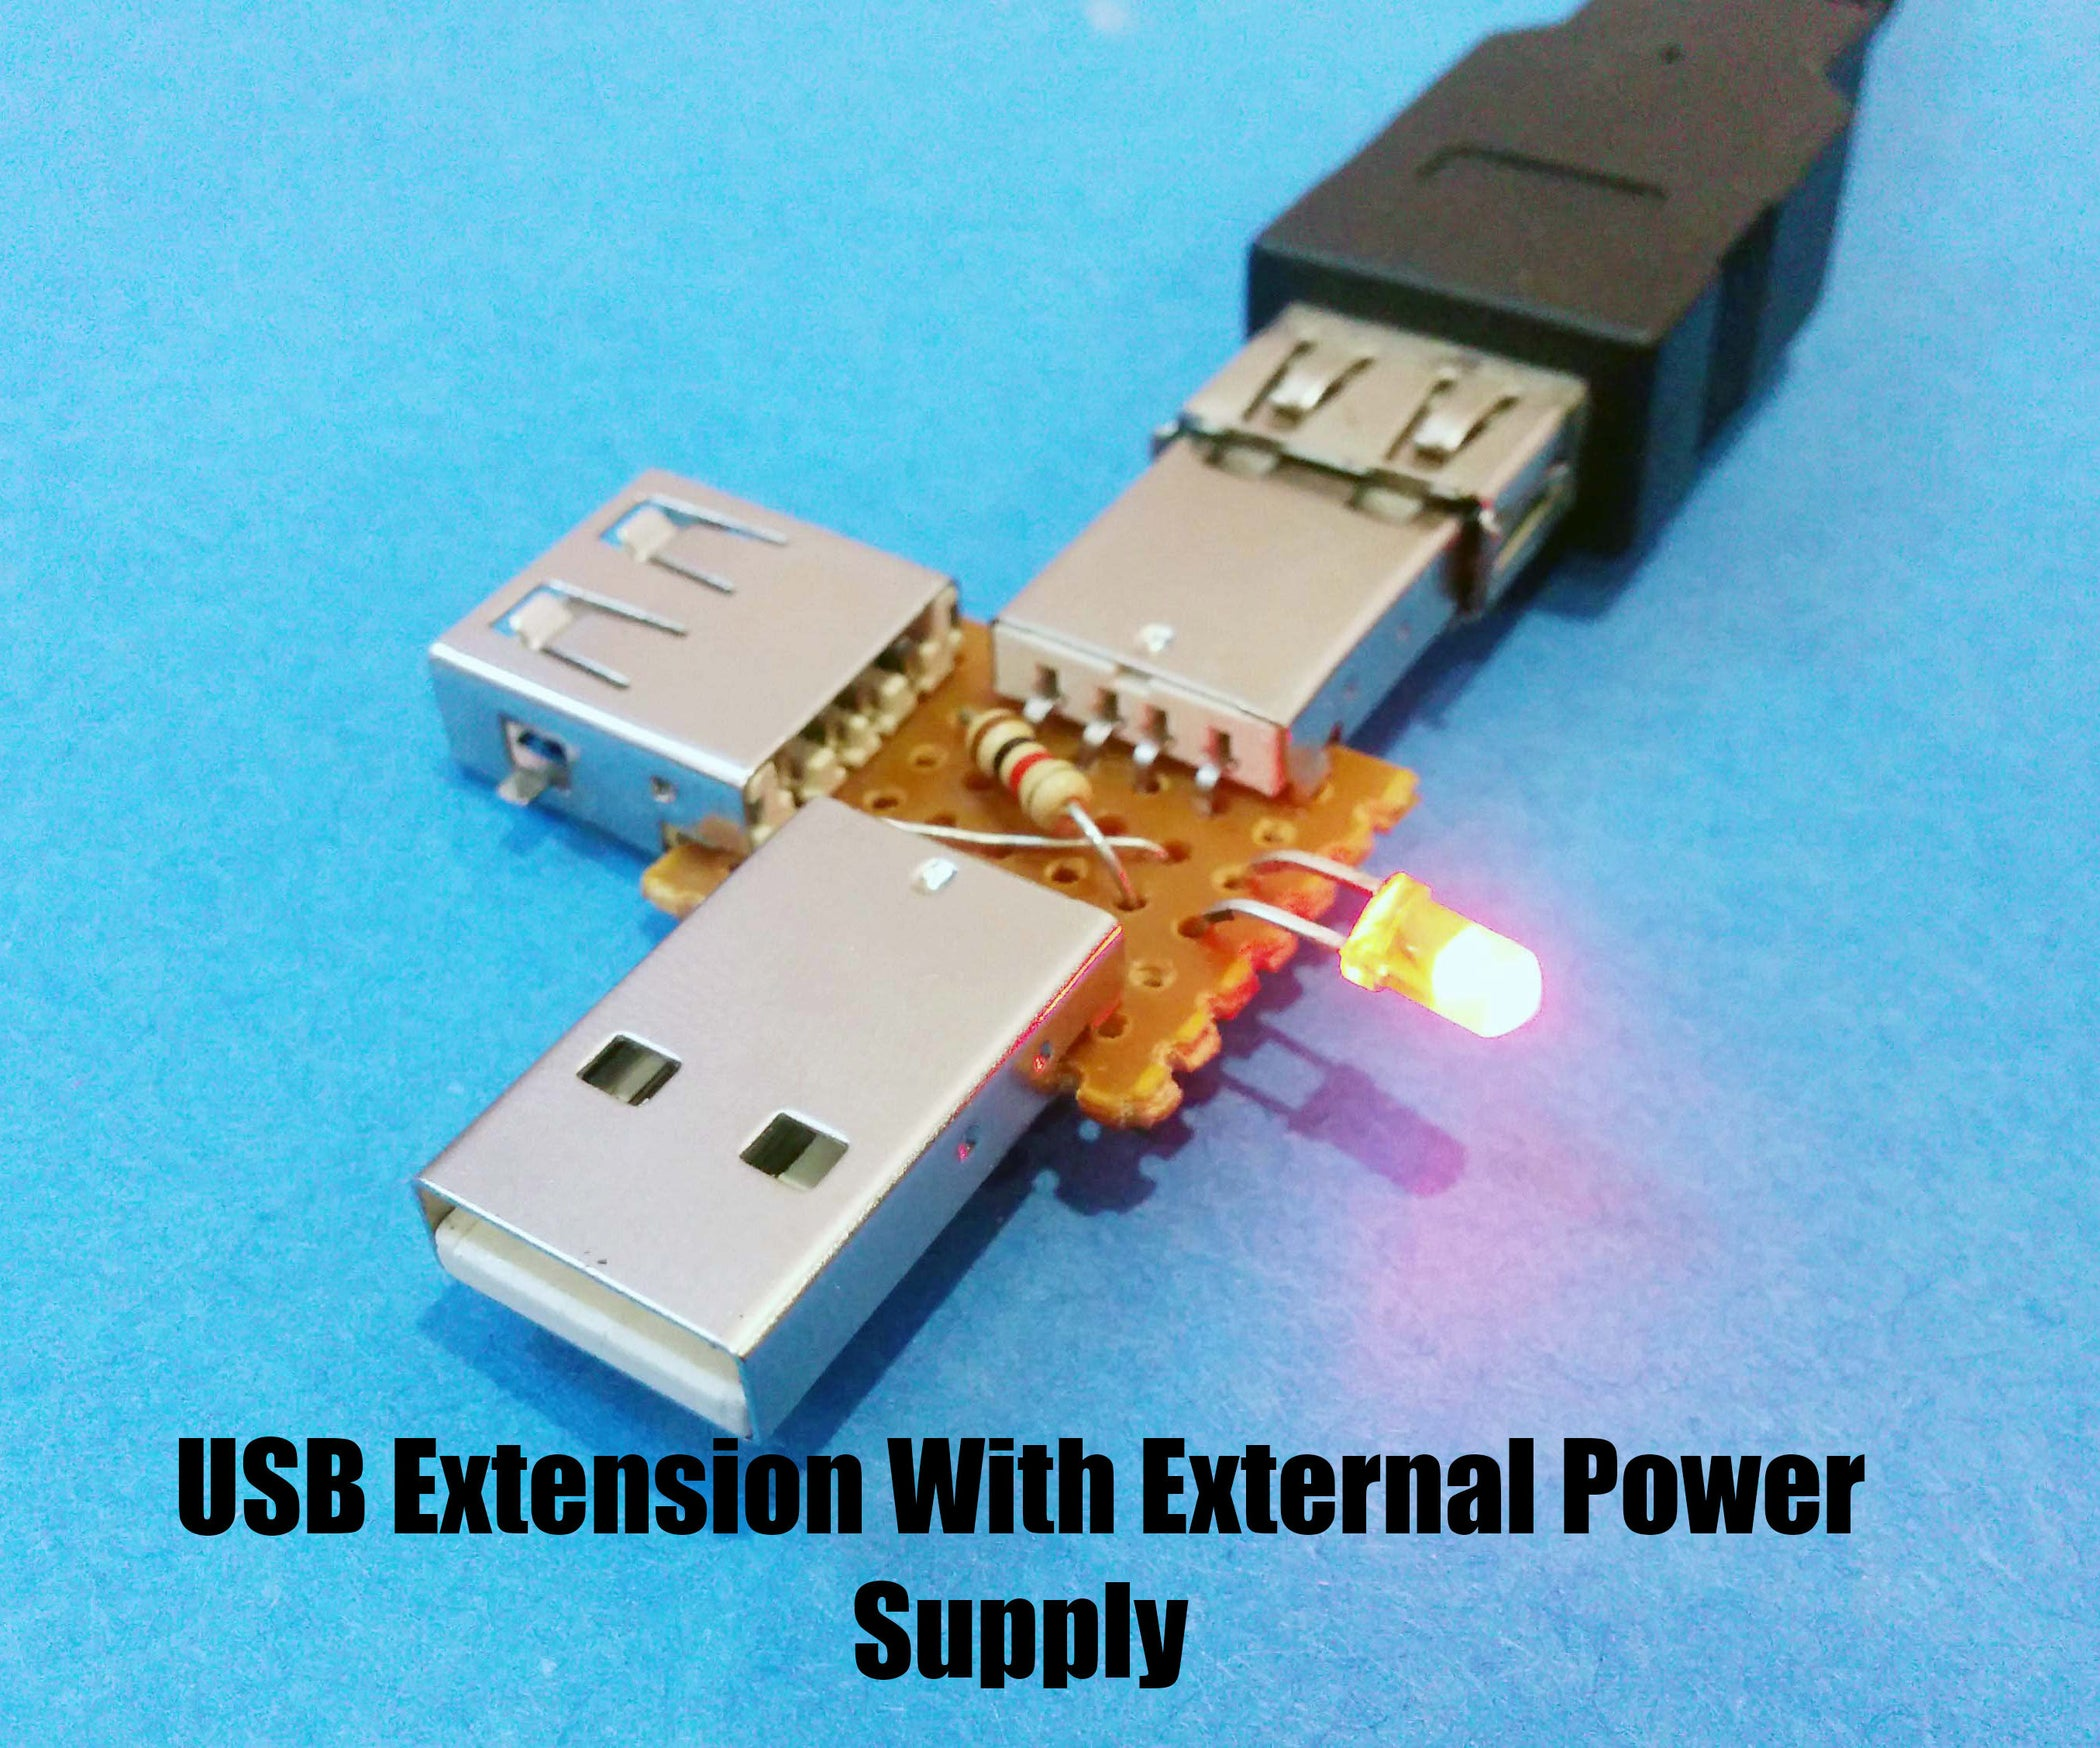 USB Extension With External Power Supply : 4 Steps (with Pictures)